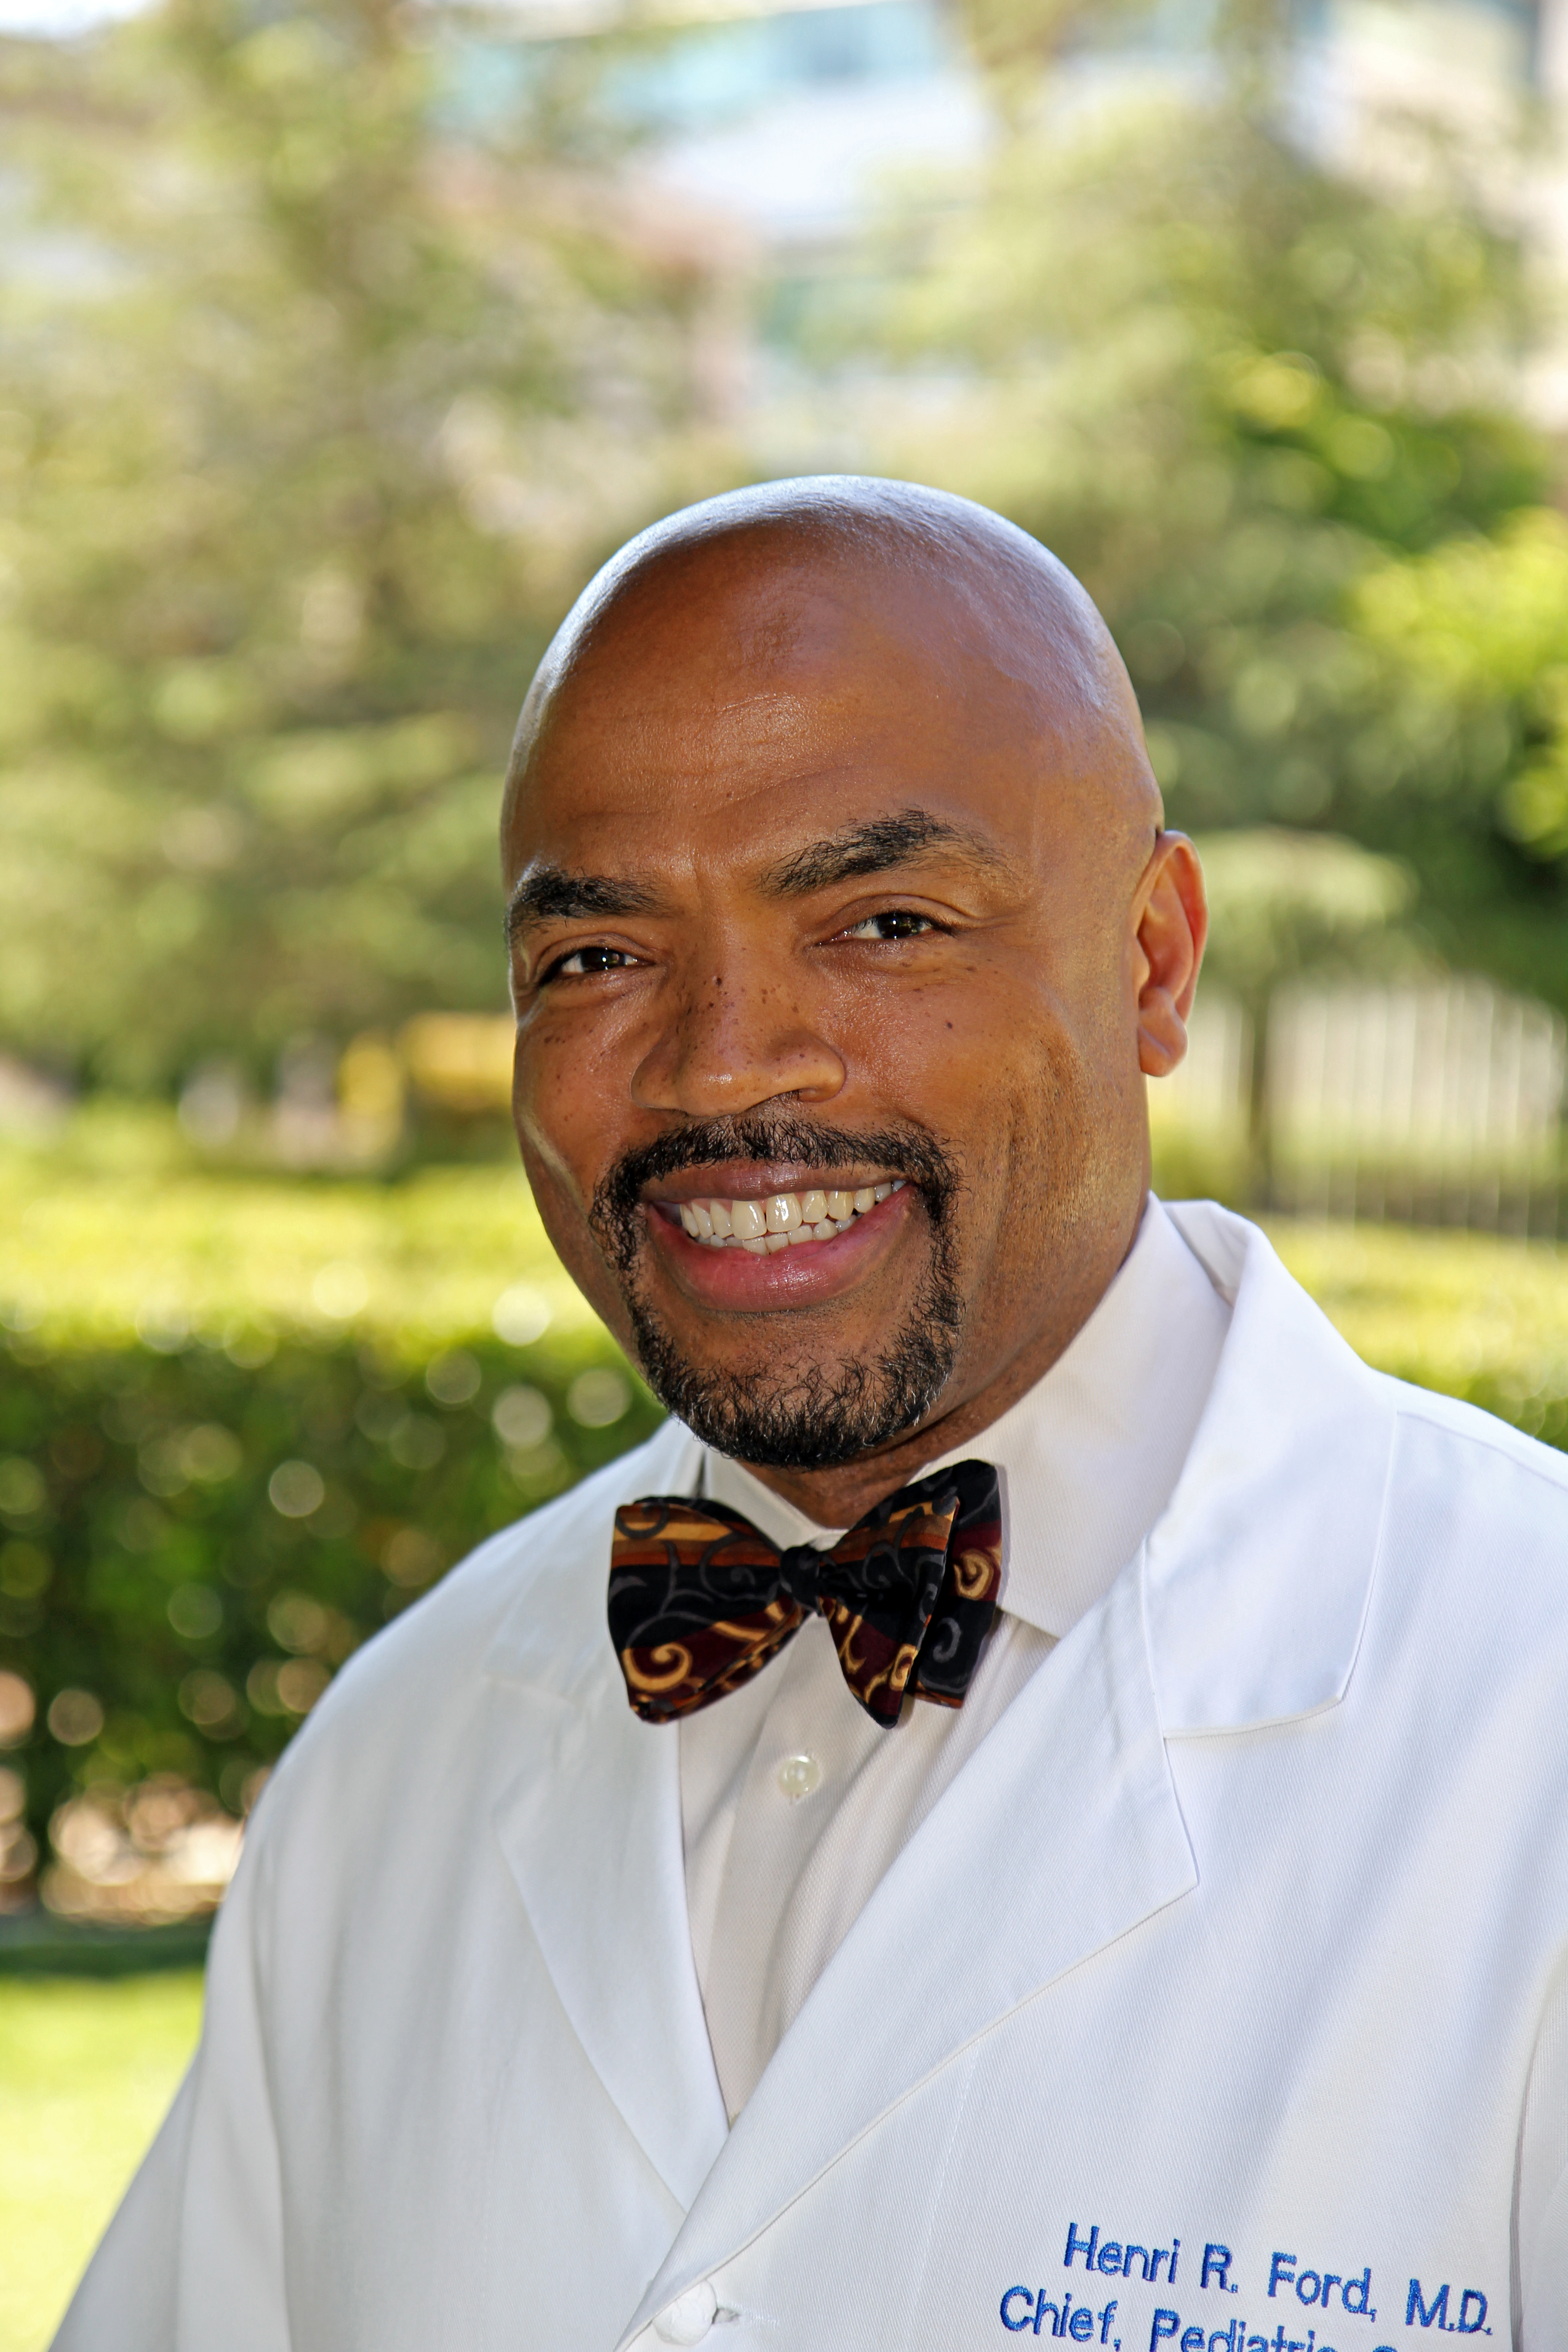 CHLA Vice President and Surgeon-in-Chief Henri R. Ford, MD, MHA, FACS, FAAP, also serves as professor of Surgery and vice dean for Medical Education at the Keck School of Medicine of the University of Southern California. (Photo Courtesy: Children's Hospital Los Angeles)